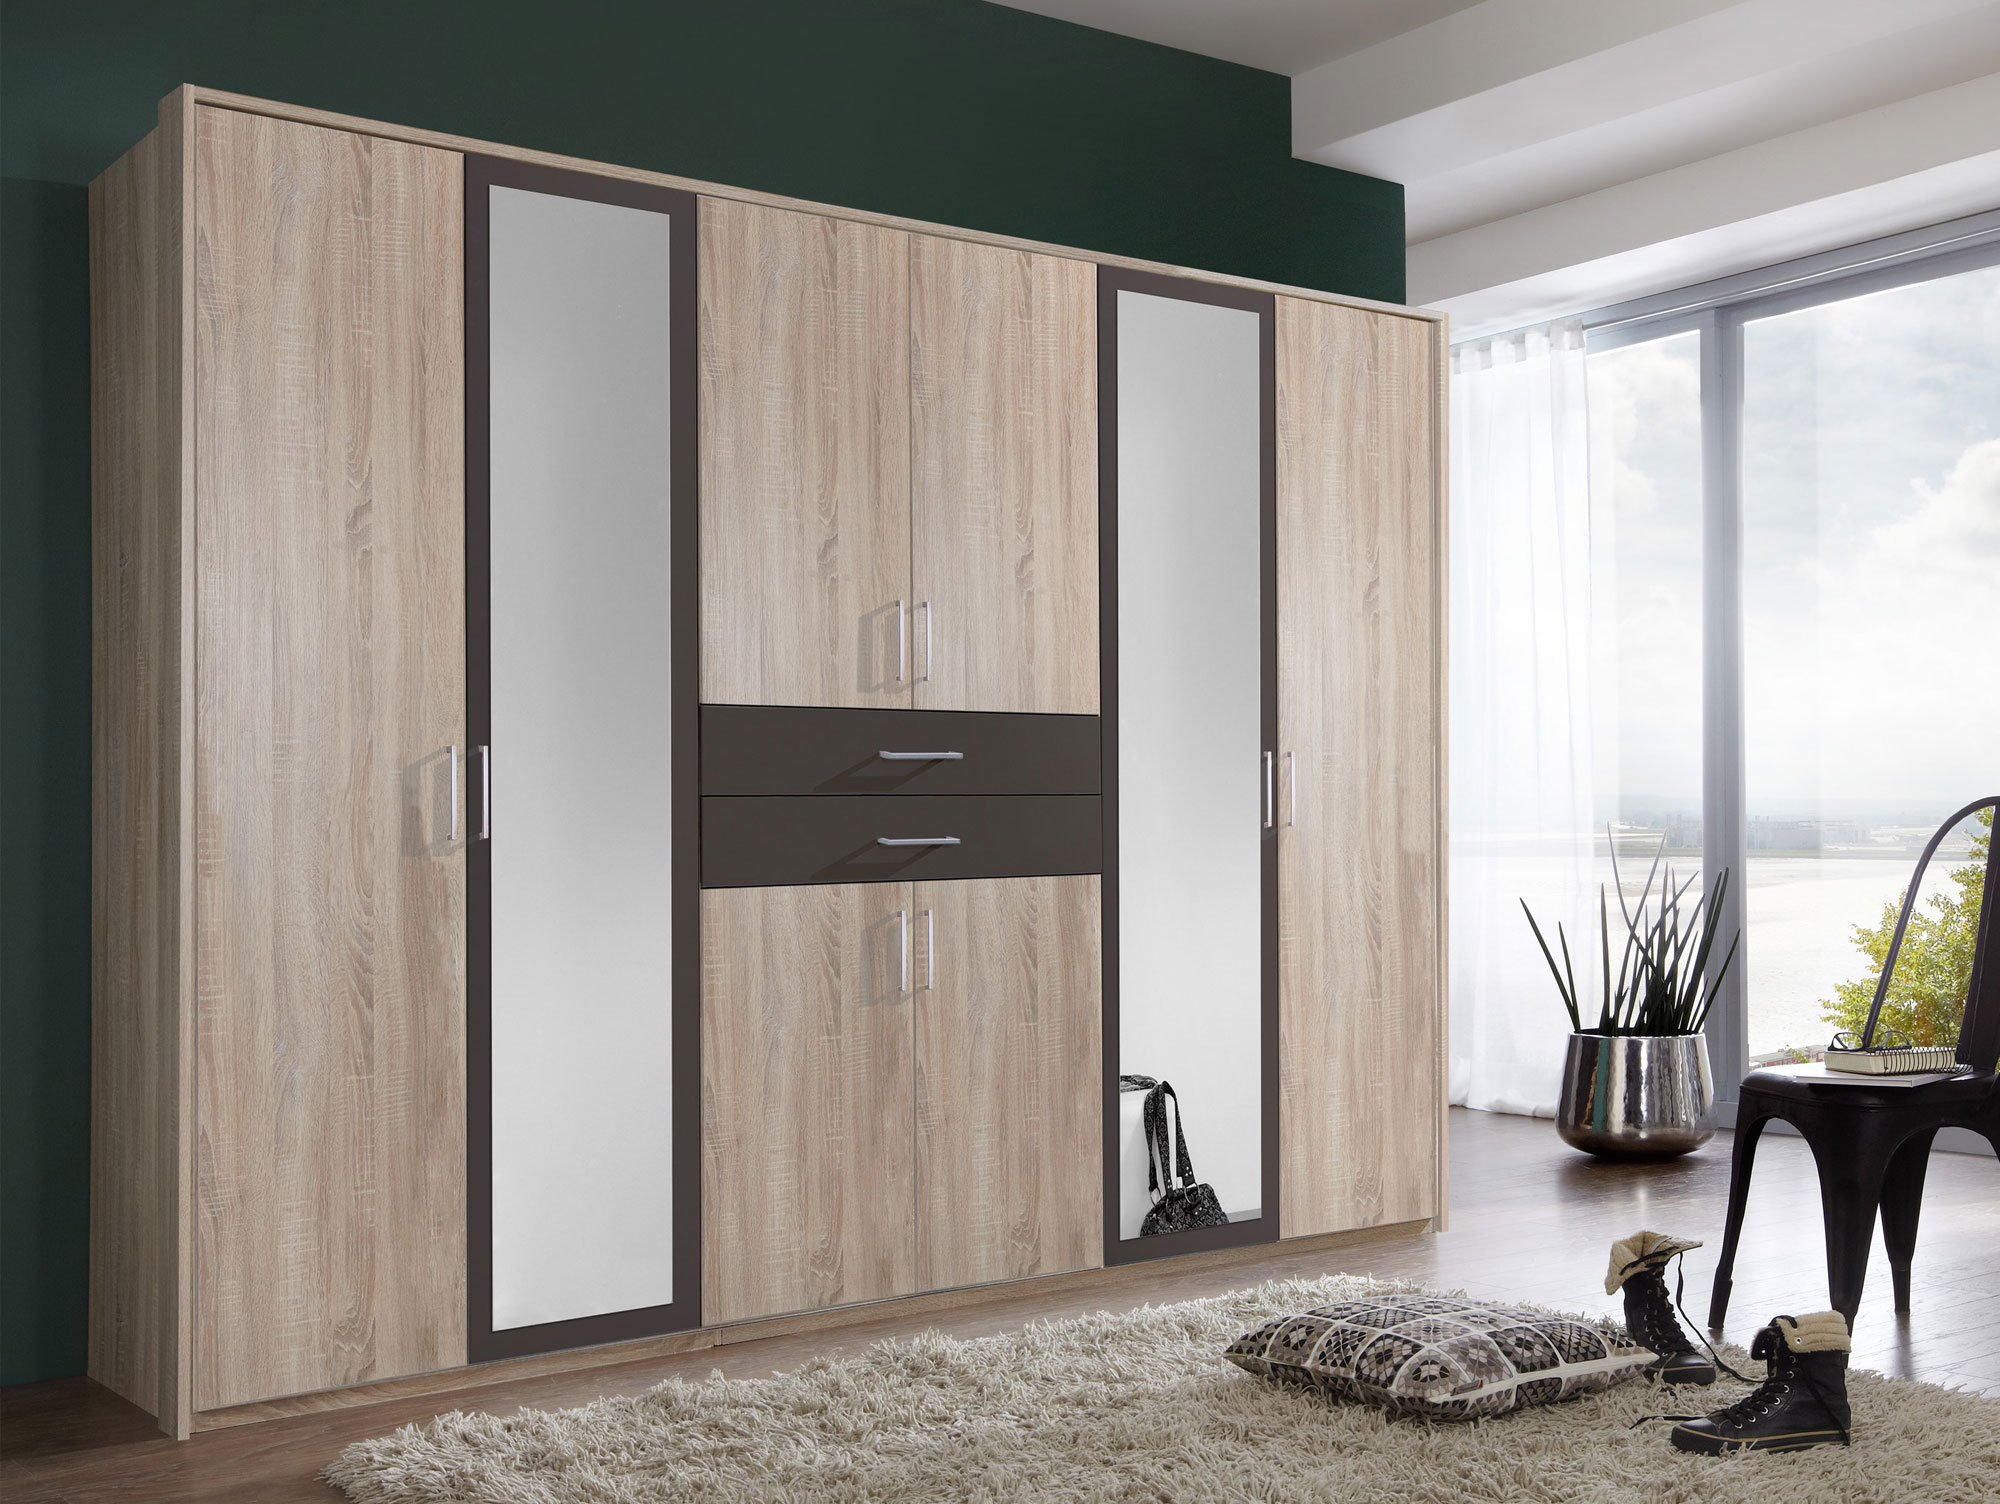 dustin kleiderschrank mit spiegelt r 270 cm eiche s gerau nachbildung mdf lavafarbig. Black Bedroom Furniture Sets. Home Design Ideas